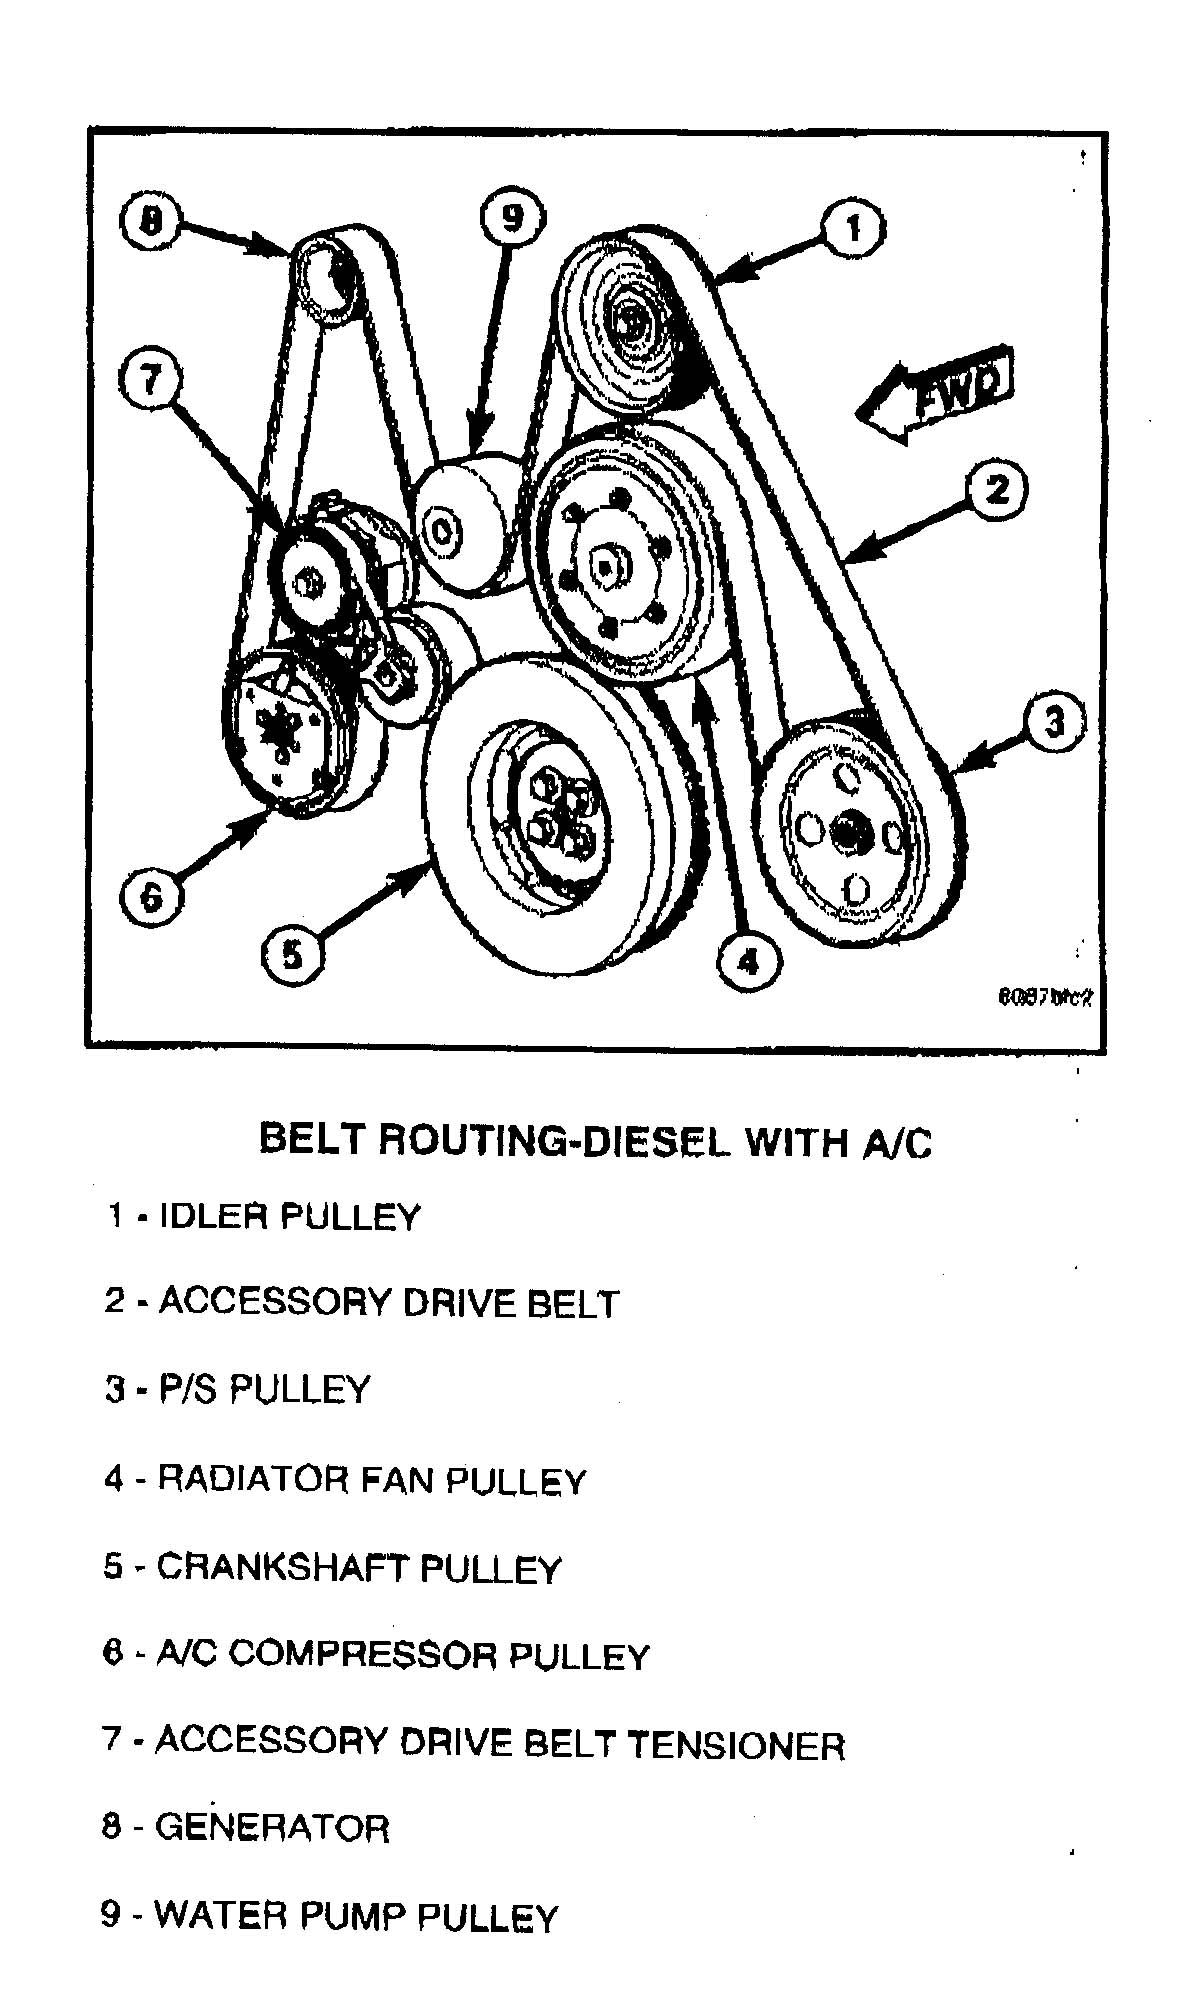 6 7 belt routing diagram - dodge diesel - diesel truck resource forums